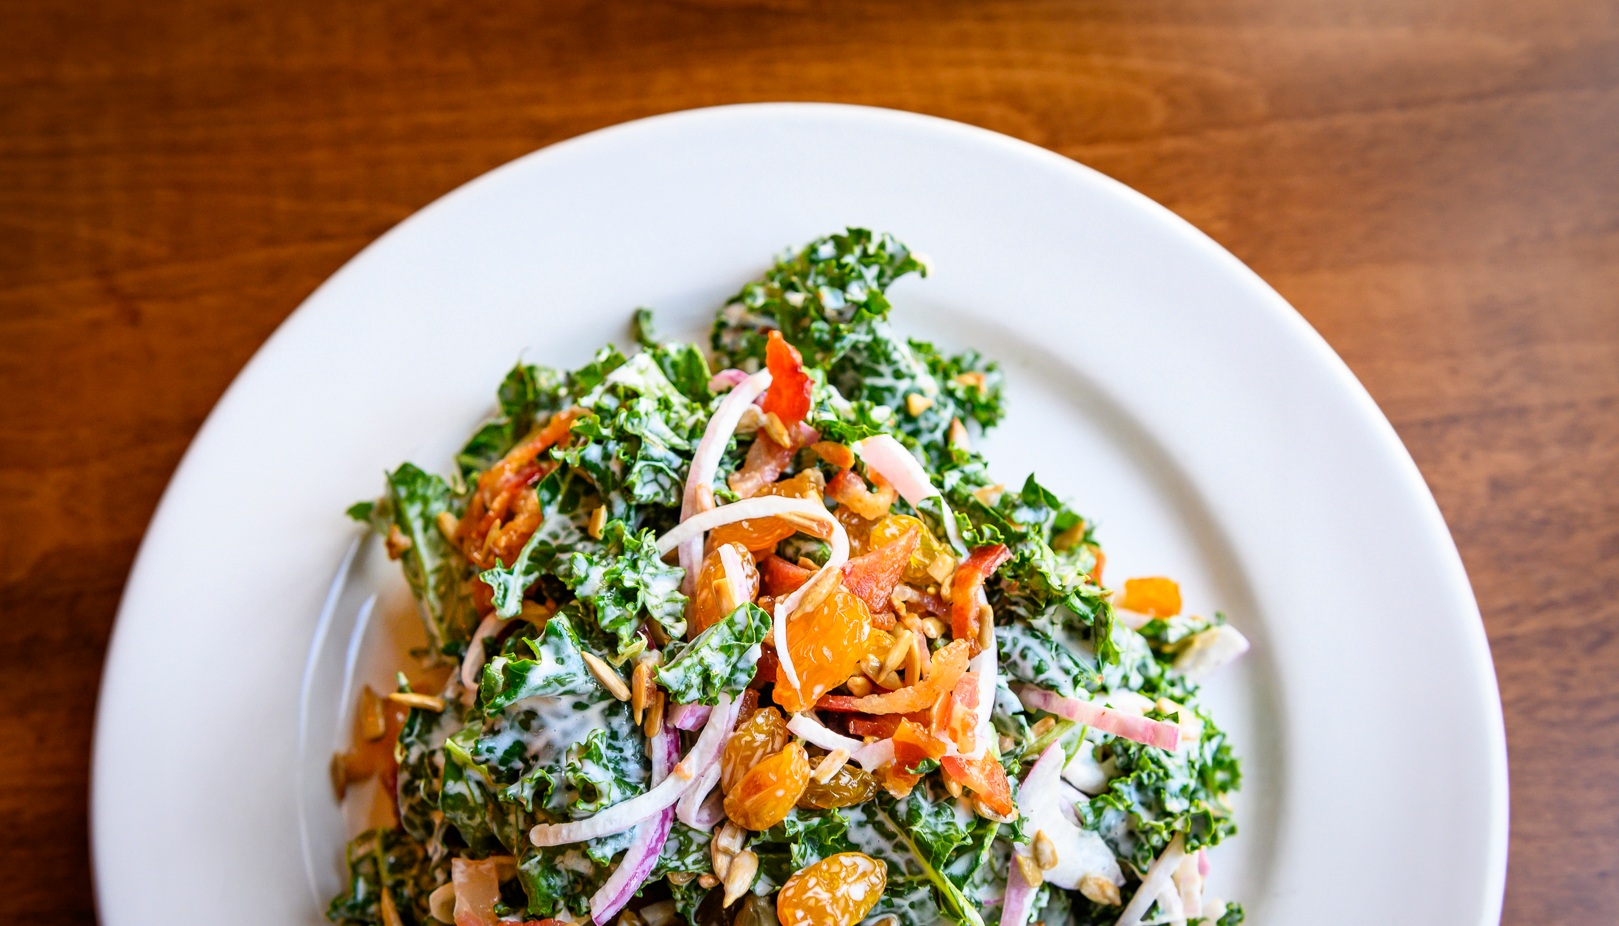 Marinated Kale Slad with toasted Sunflower Seeds, golden raisins, Applewood smoked bacon, red onions, champagne dressing